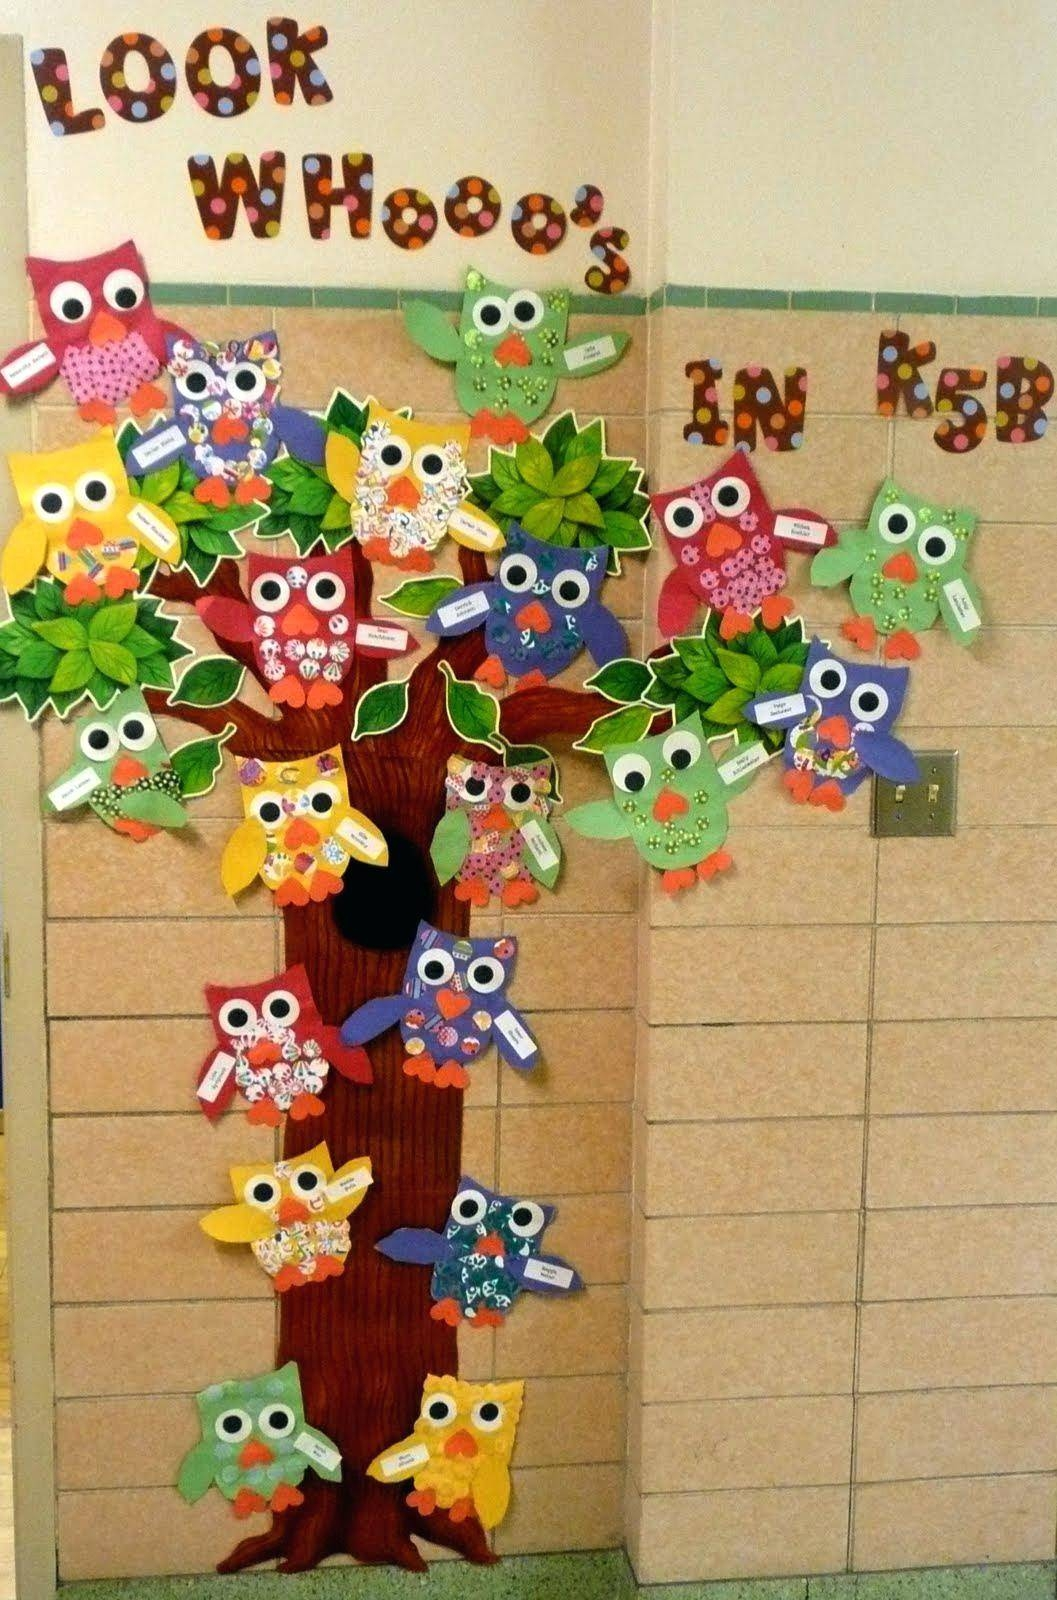 Wall Decor : Splendid Preschool Classroom Design With Cute Wall Within Most Popular Preschool Wall Decoration (View 30 of 30)